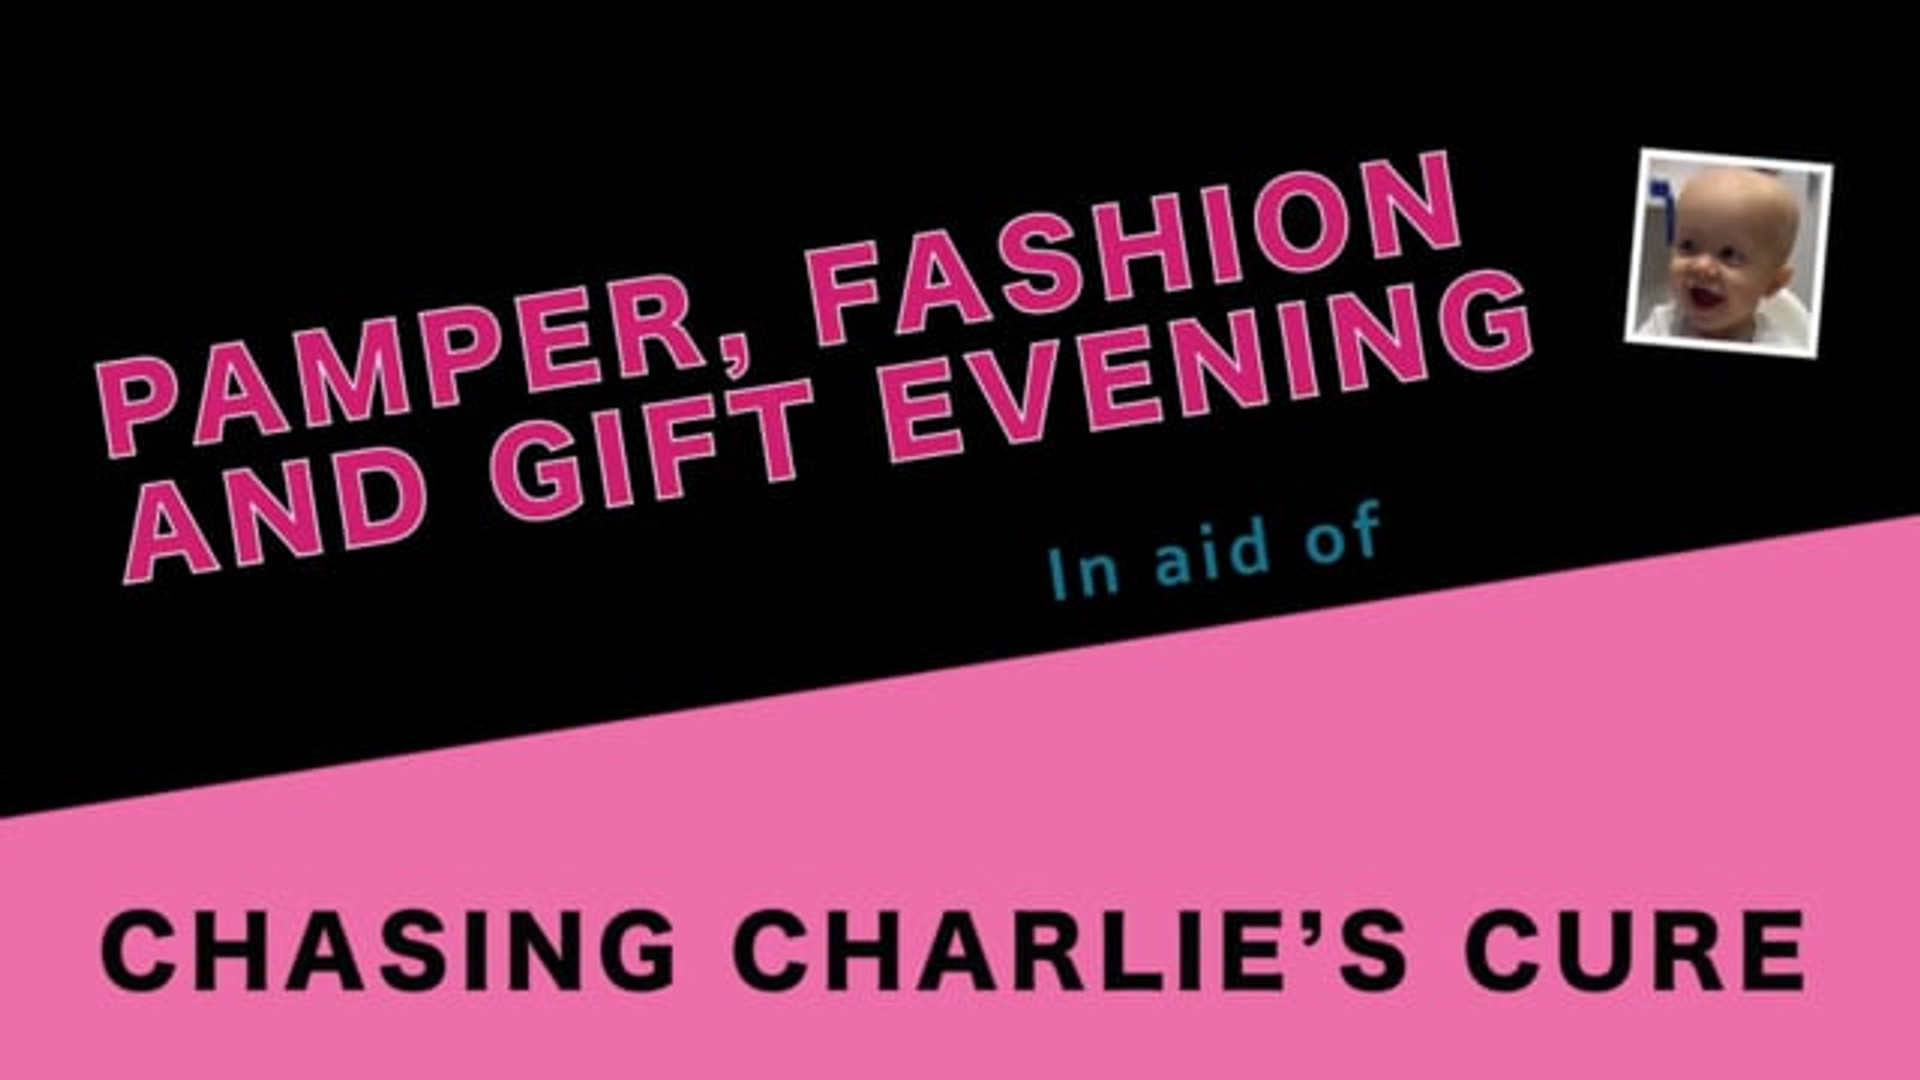 Chasing Charlie's Cure event